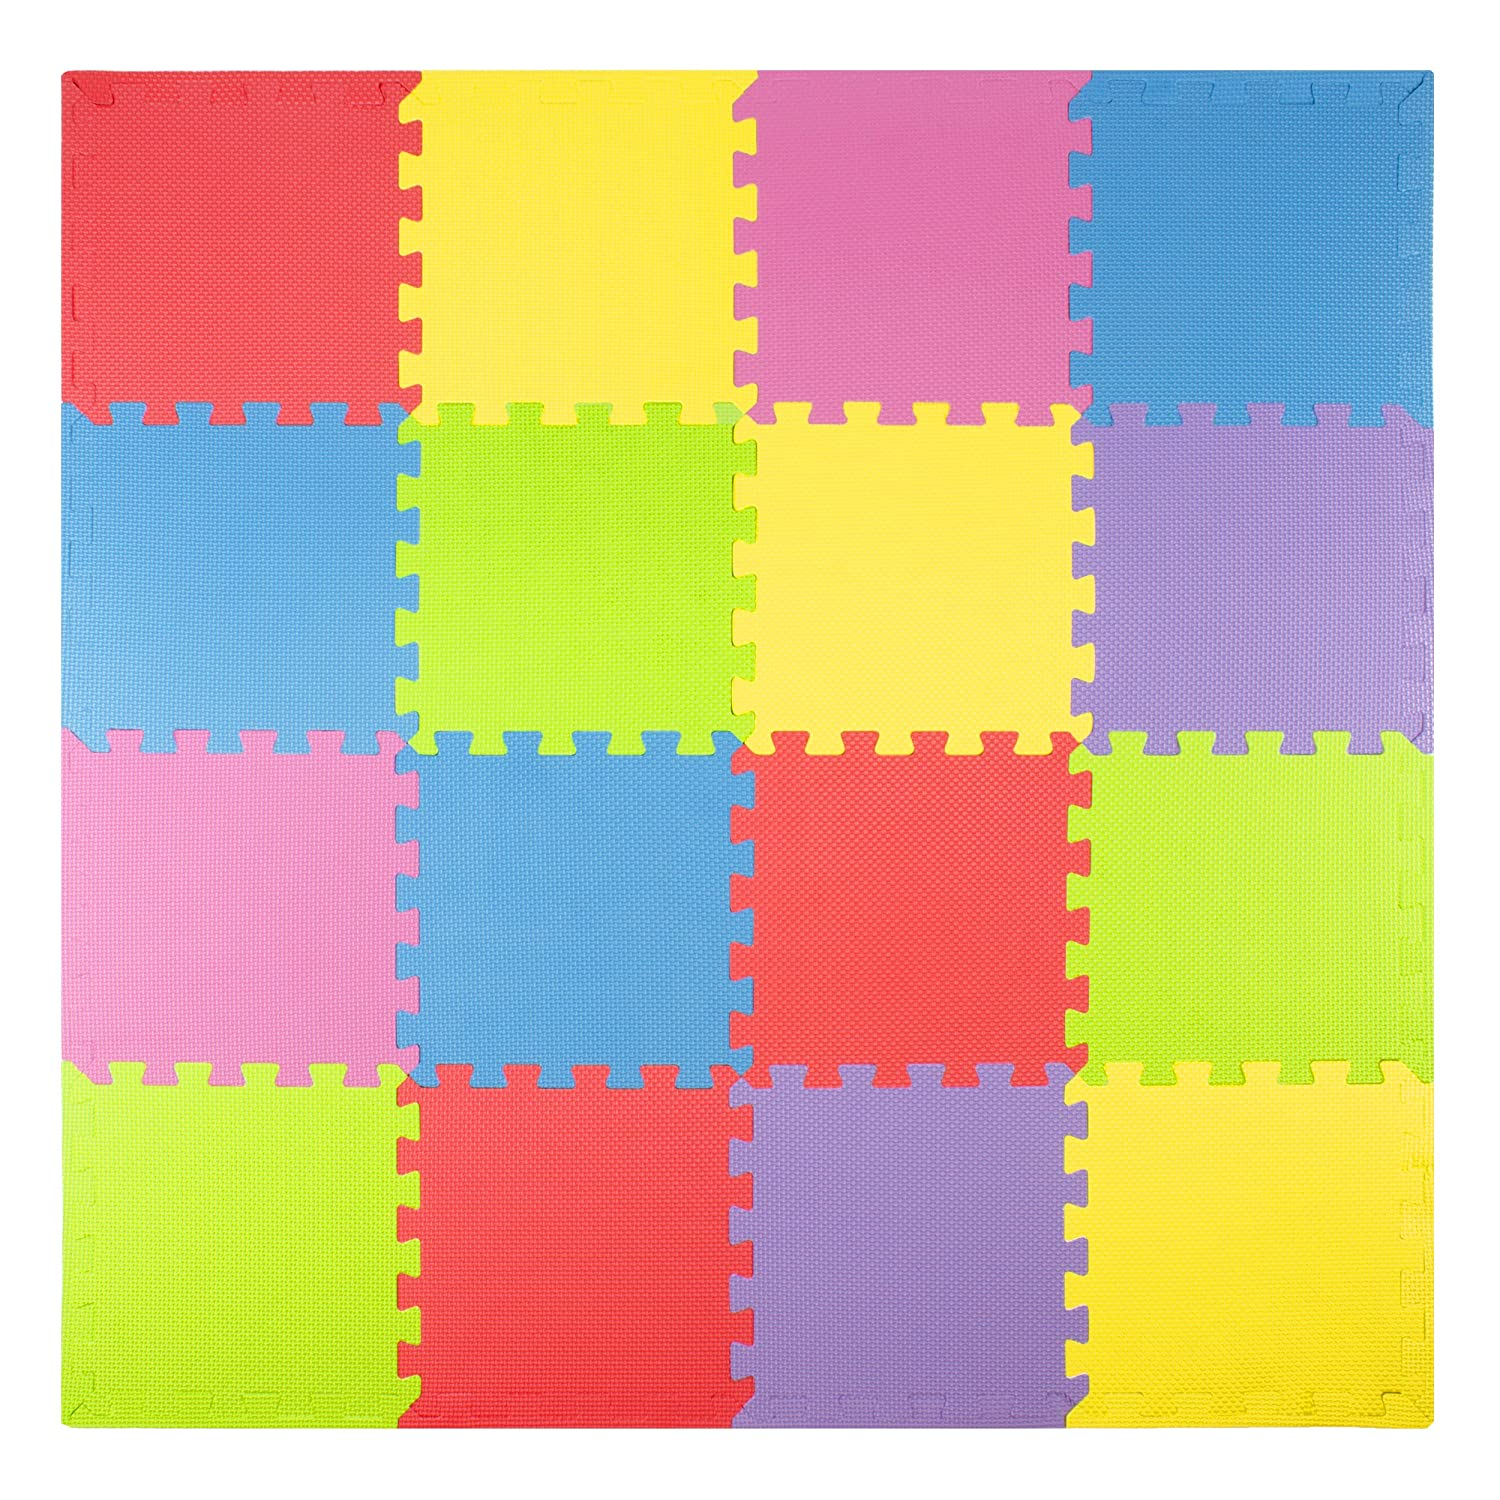 Amazon foam play mats 16 tiles borders safe kids puzzle amazon foam play mats 16 tiles borders safe kids puzzle playmat non toxic interlocking floor children baby room soft eva thick color flooring dailygadgetfo Image collections